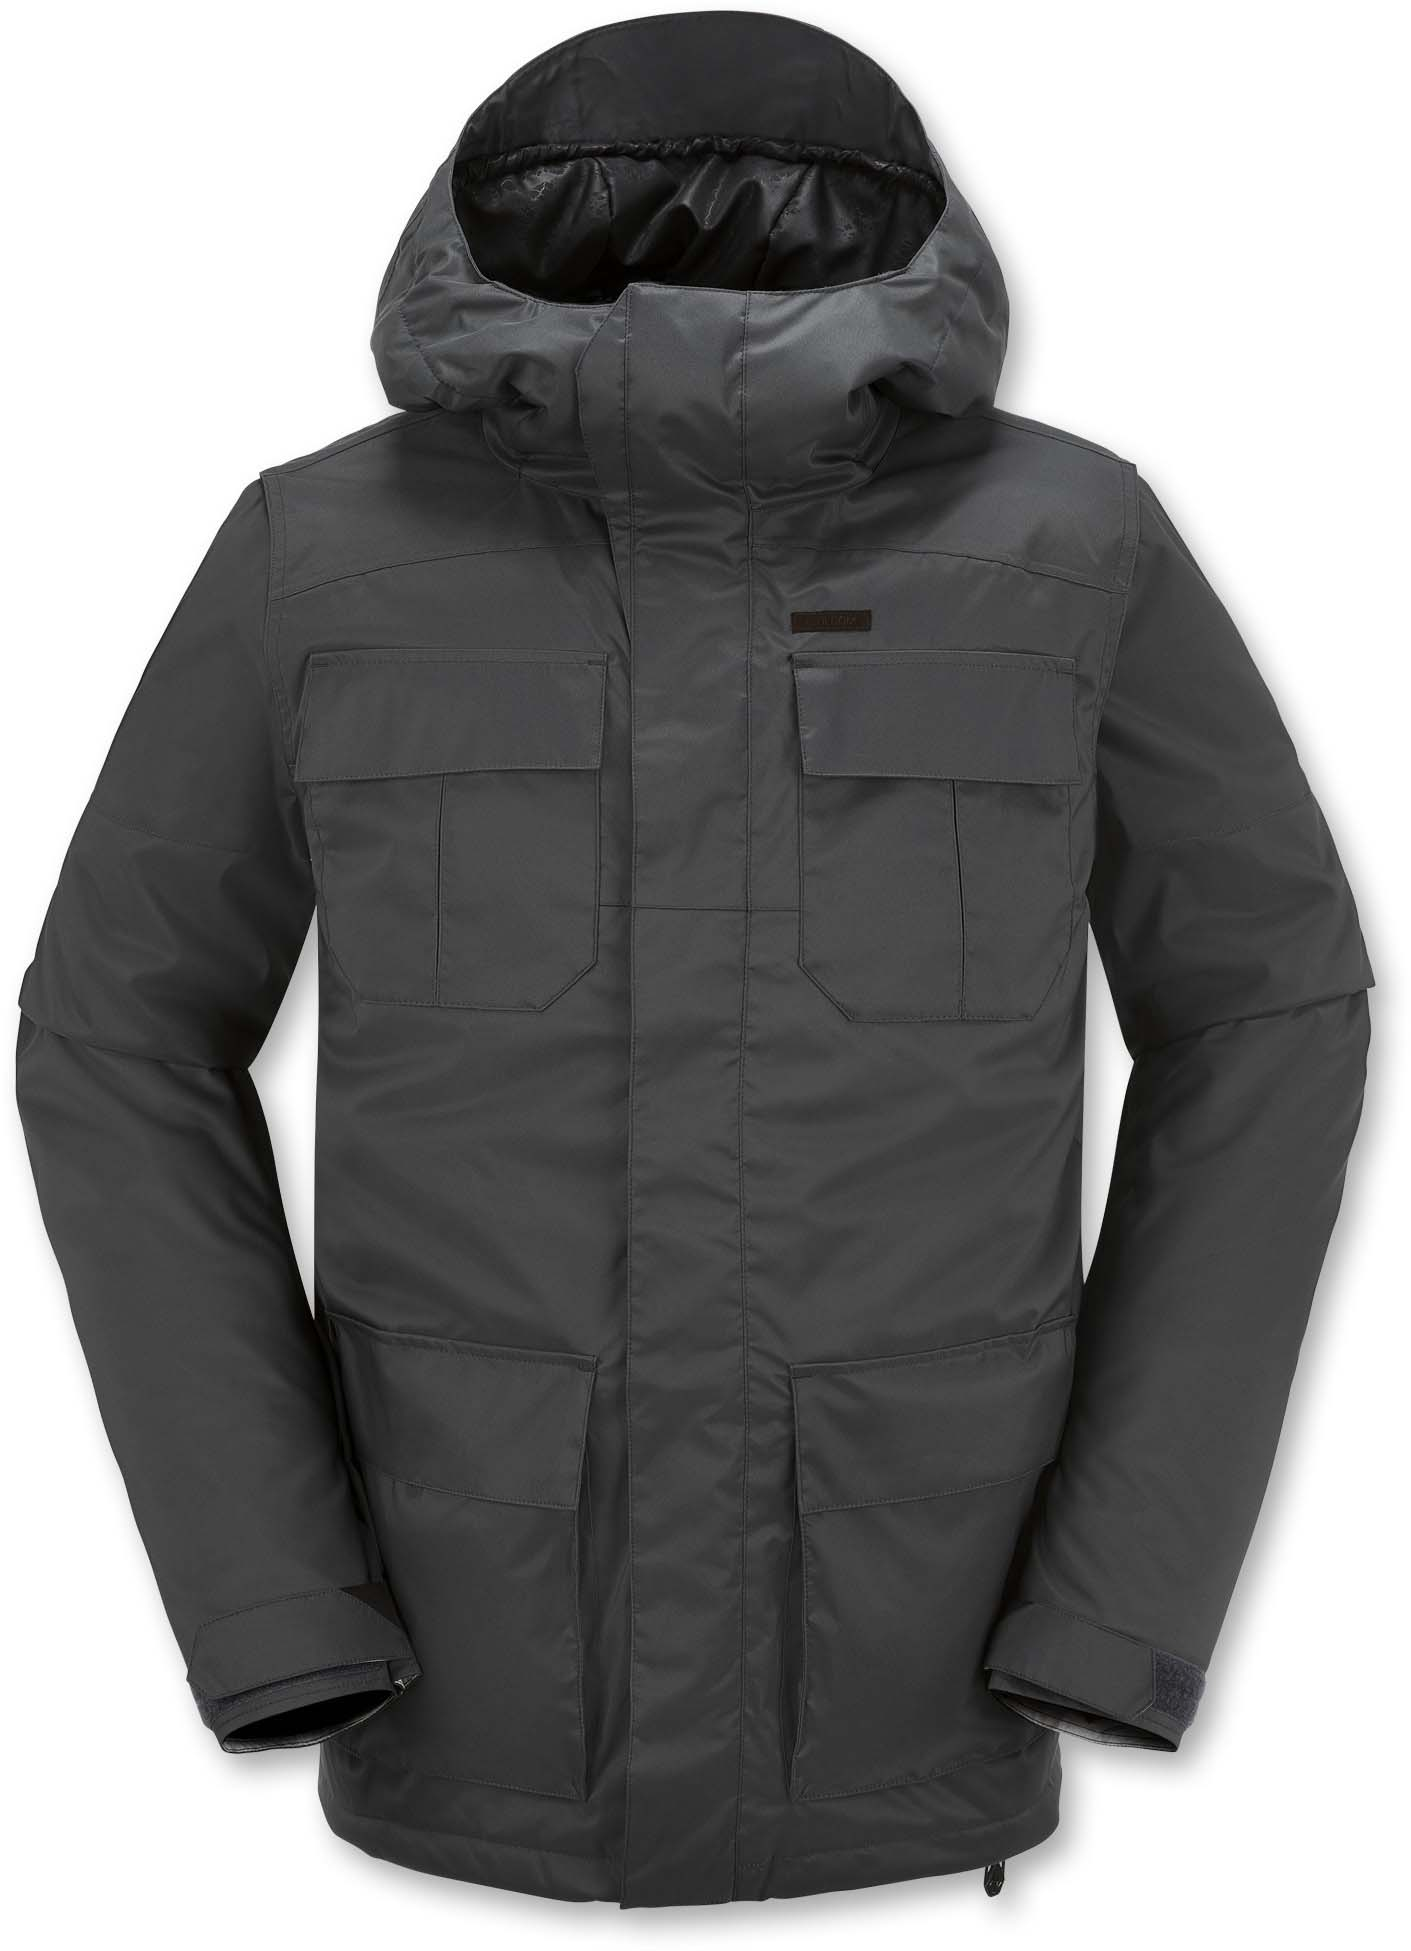 image volcom-alternate-insulated-jacket-charcoal-jpg